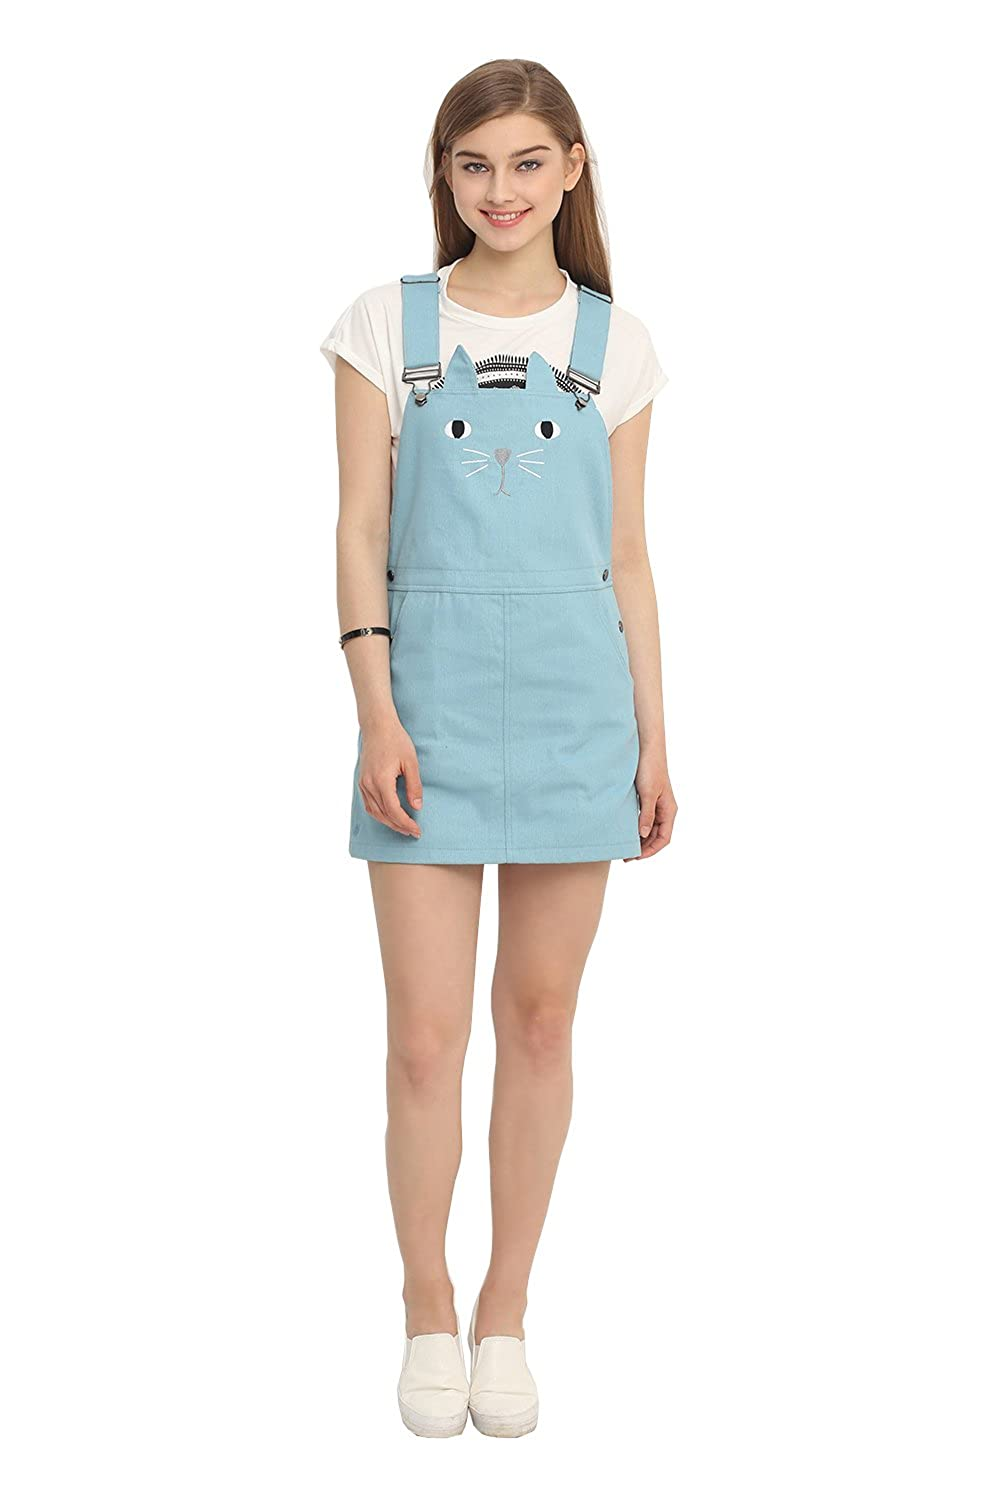 JollyChic Women's Cute Cate Embroidery Sweet Candy Color Denim Bib Overall